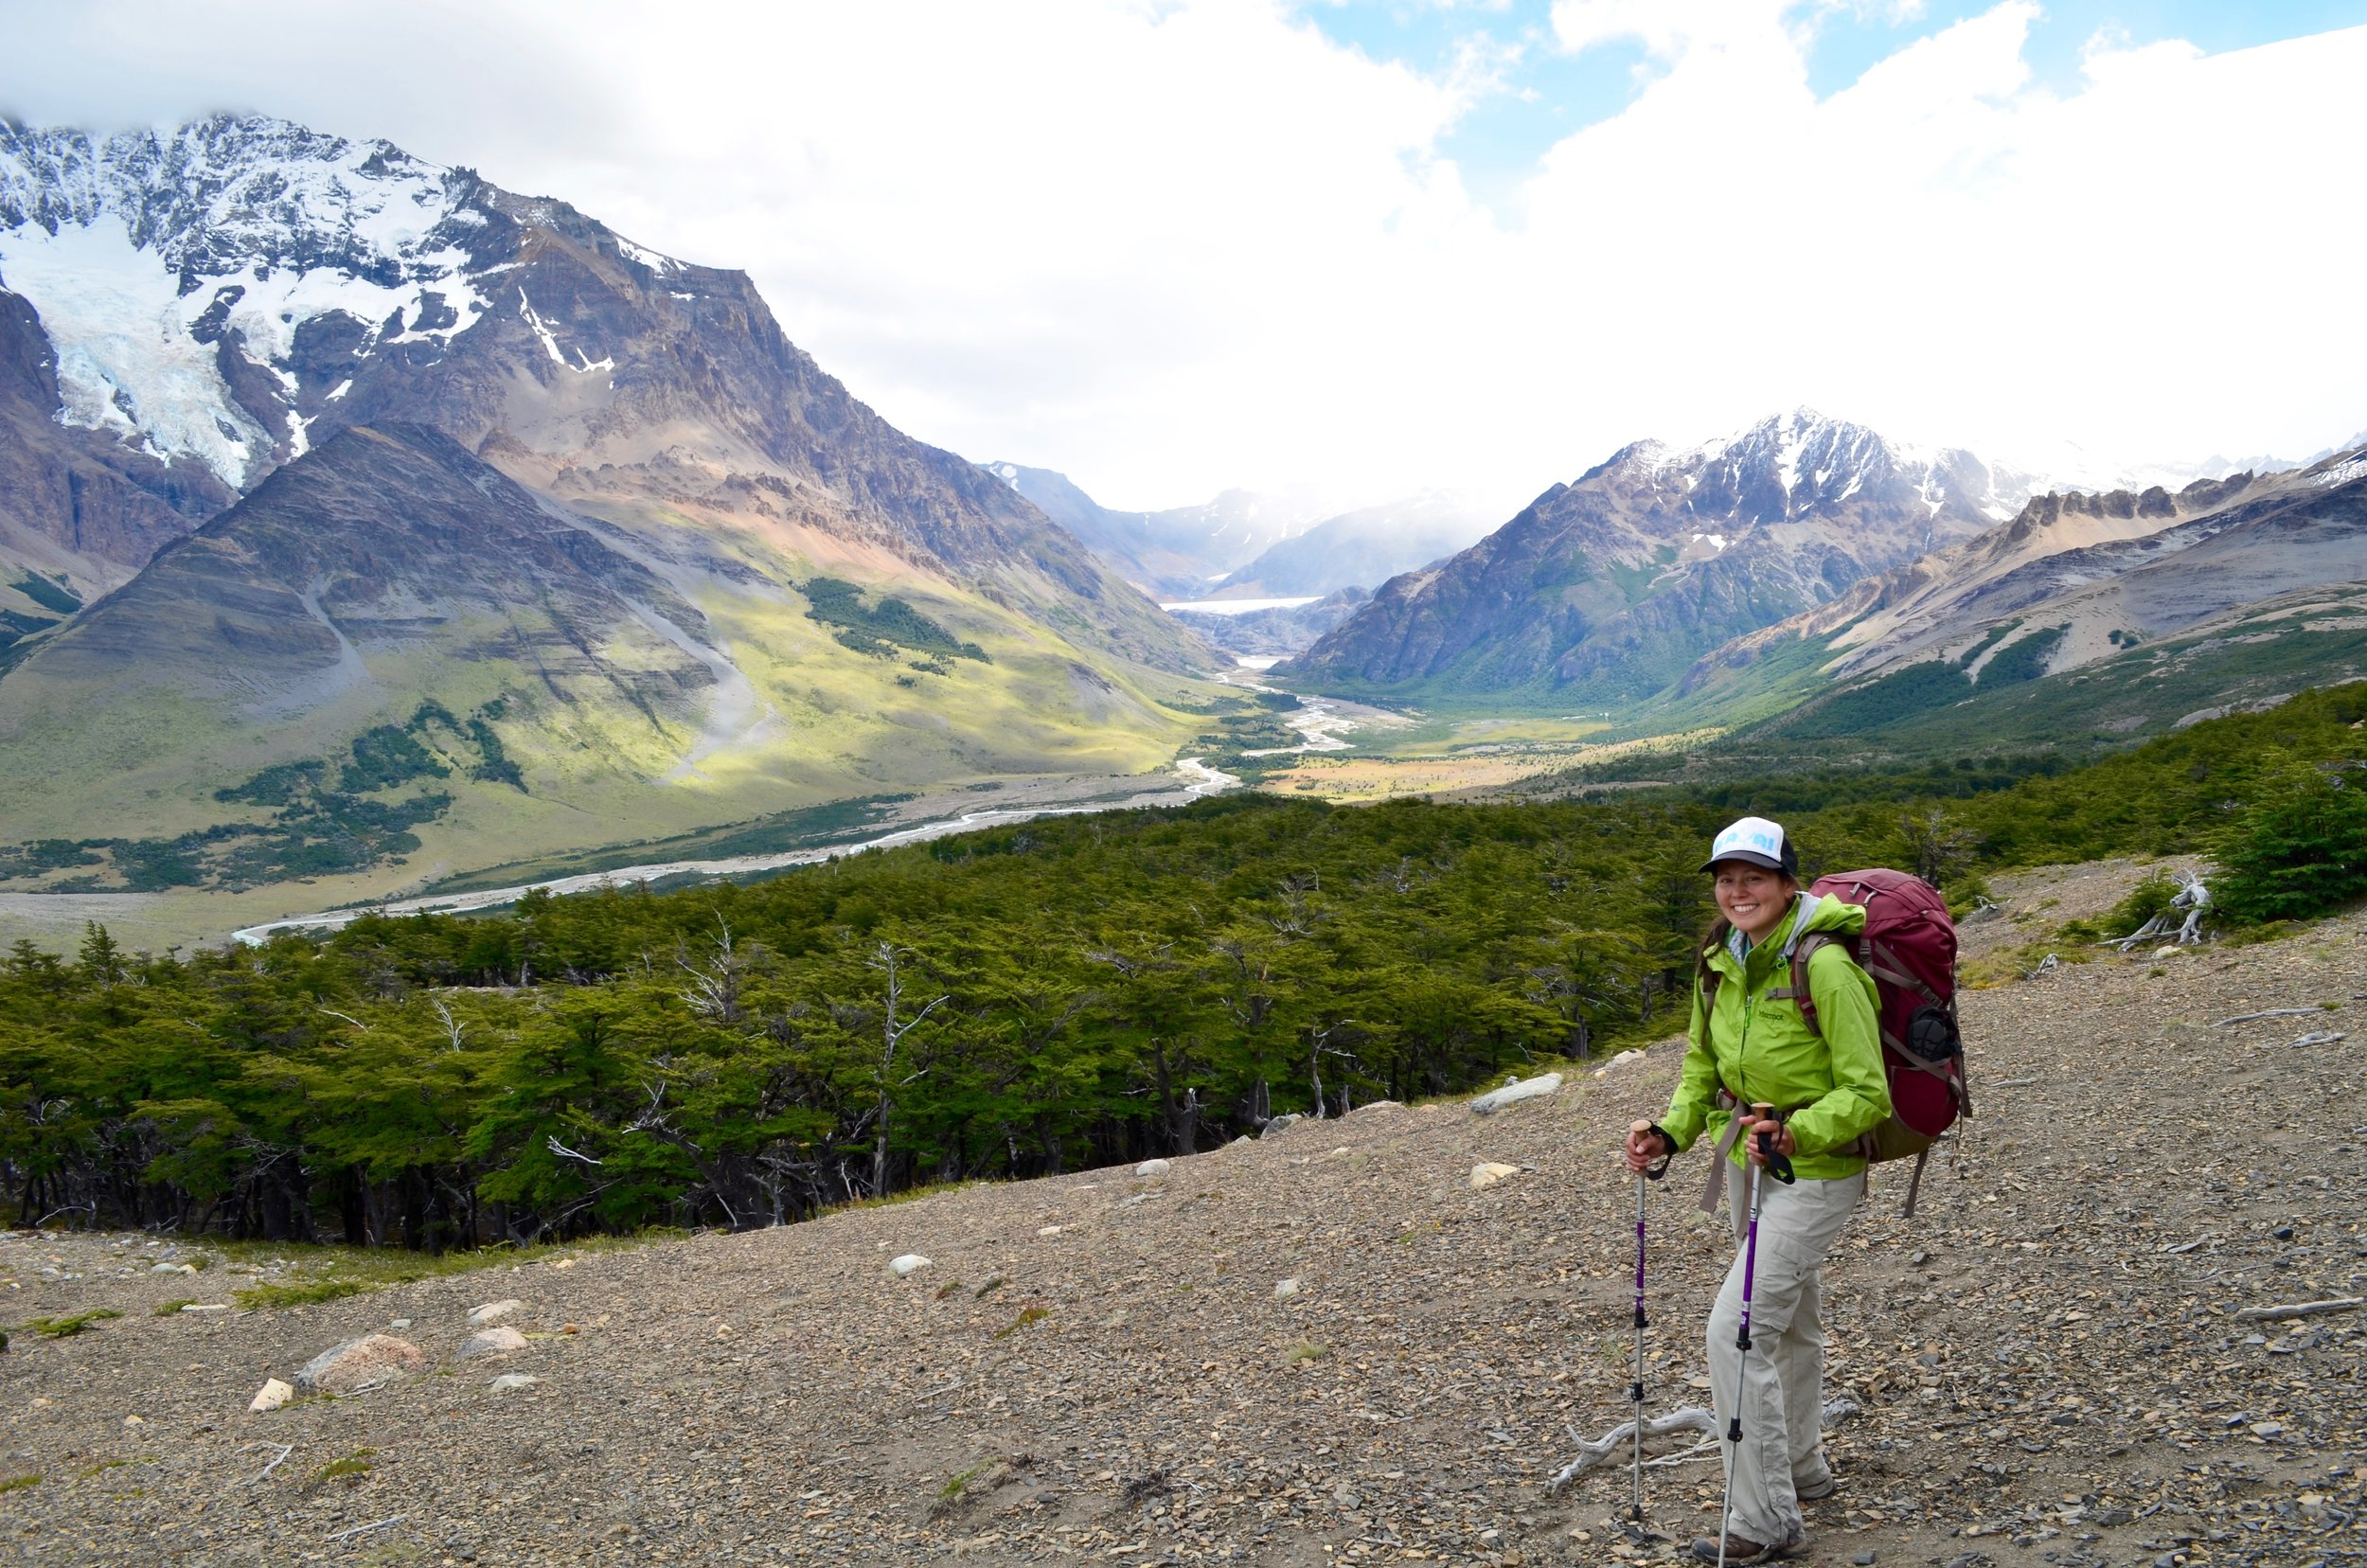 Small, focused steps brought me to this place beyond my dreams, in the wilds of southern Patagonia.